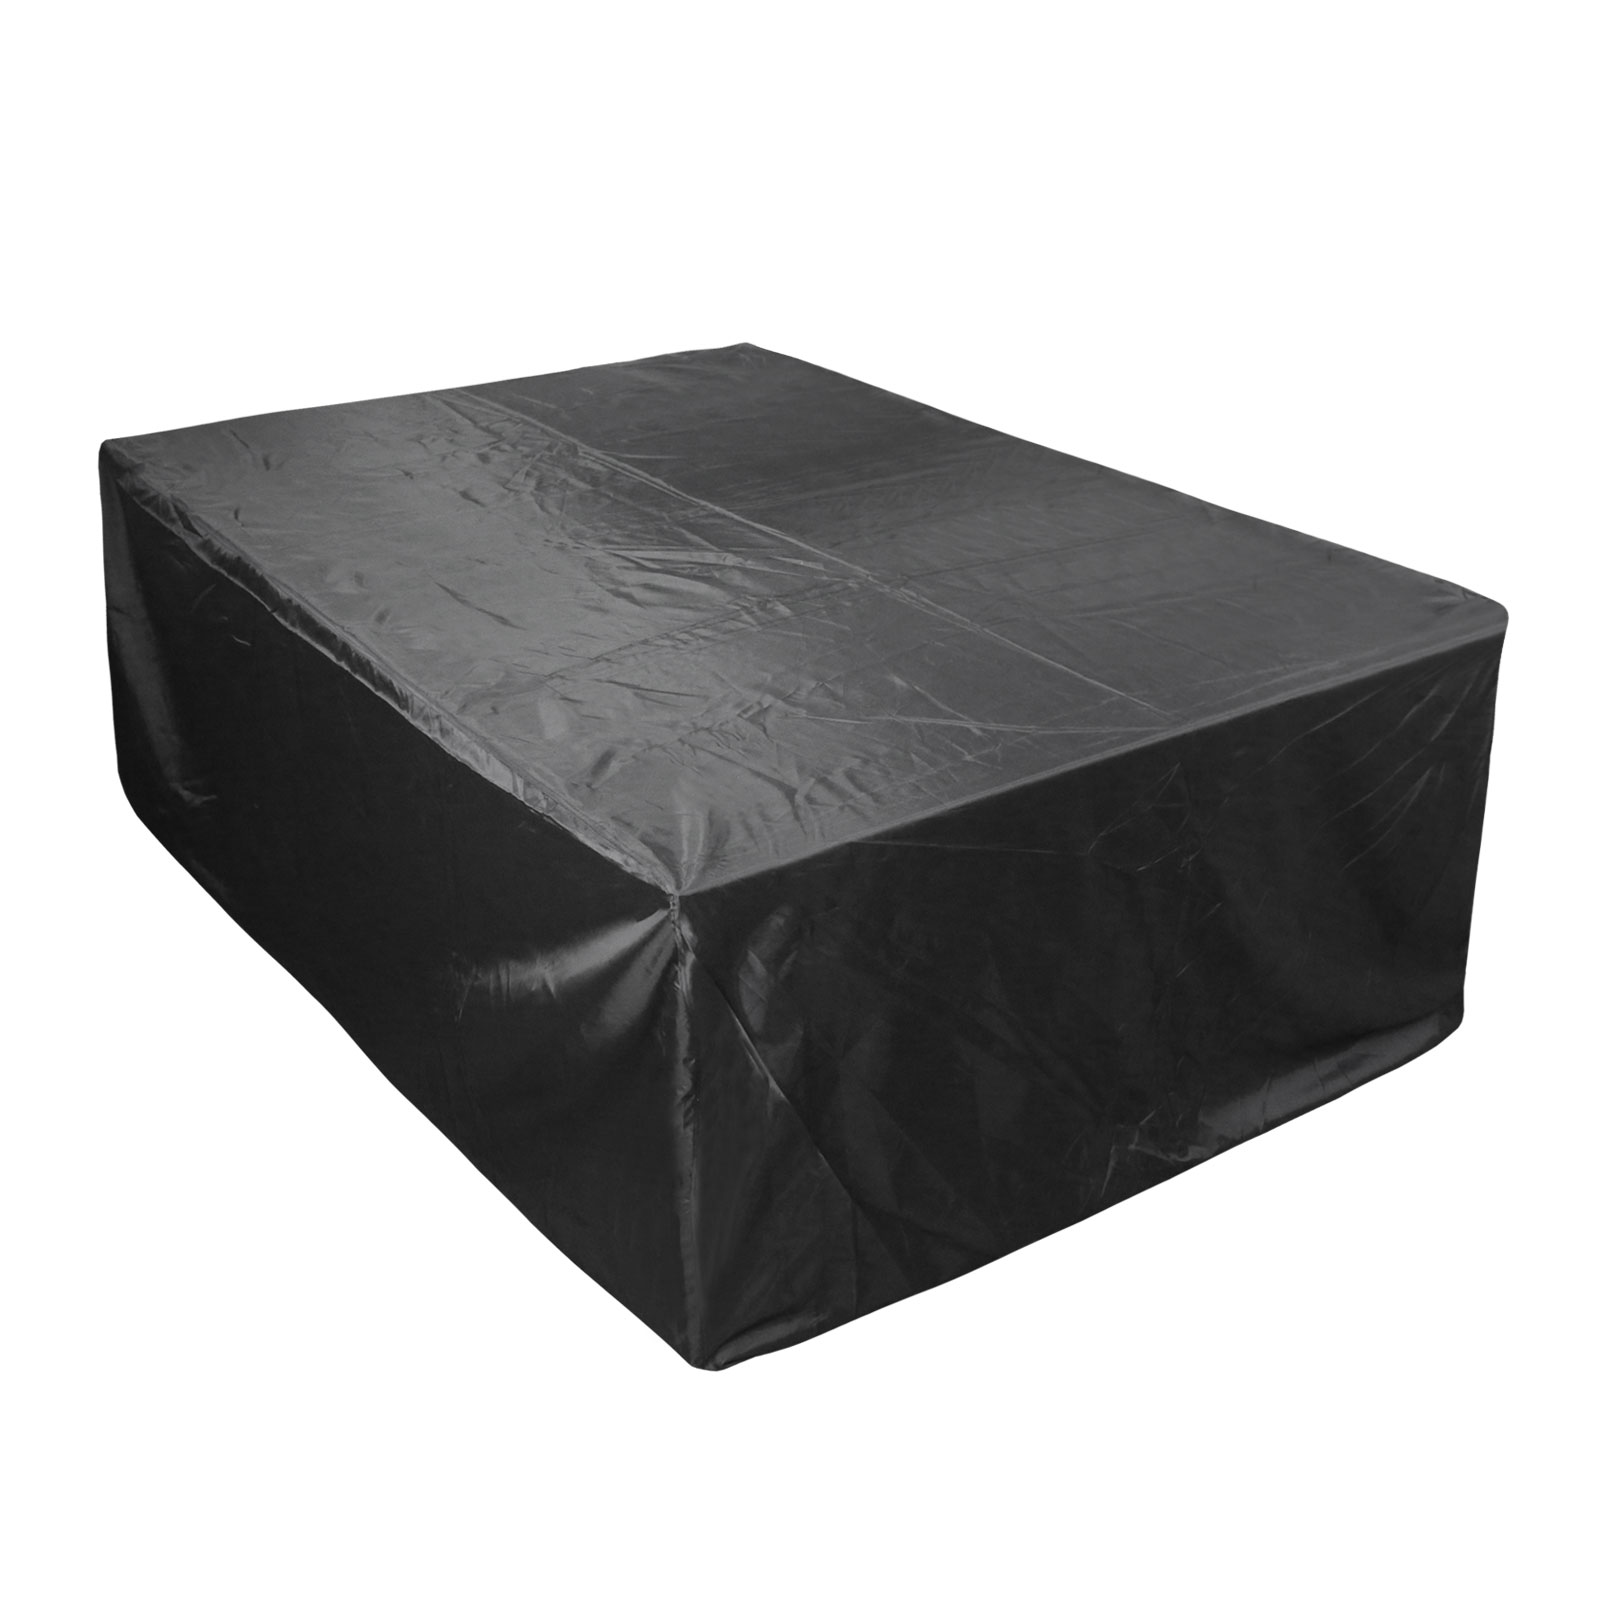 Heavy Duty Ratten Furniture Cover Patio Outdoor Garden Table Set Protection